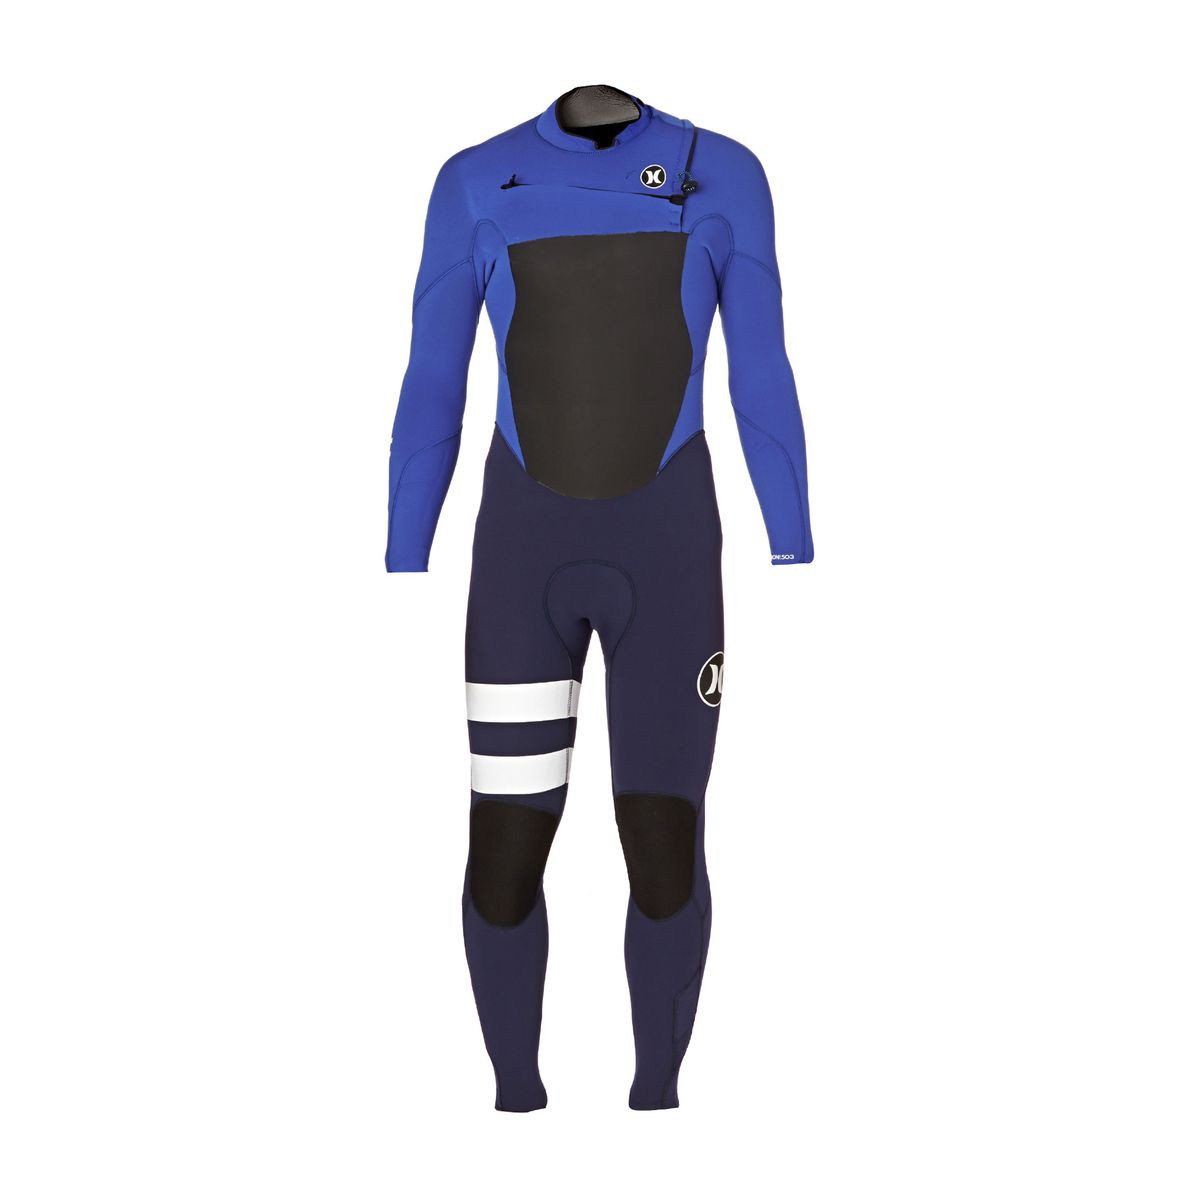 Hurley Fusion 4/3mm 2017 Chest Zip Wetsuit - Racer Blue